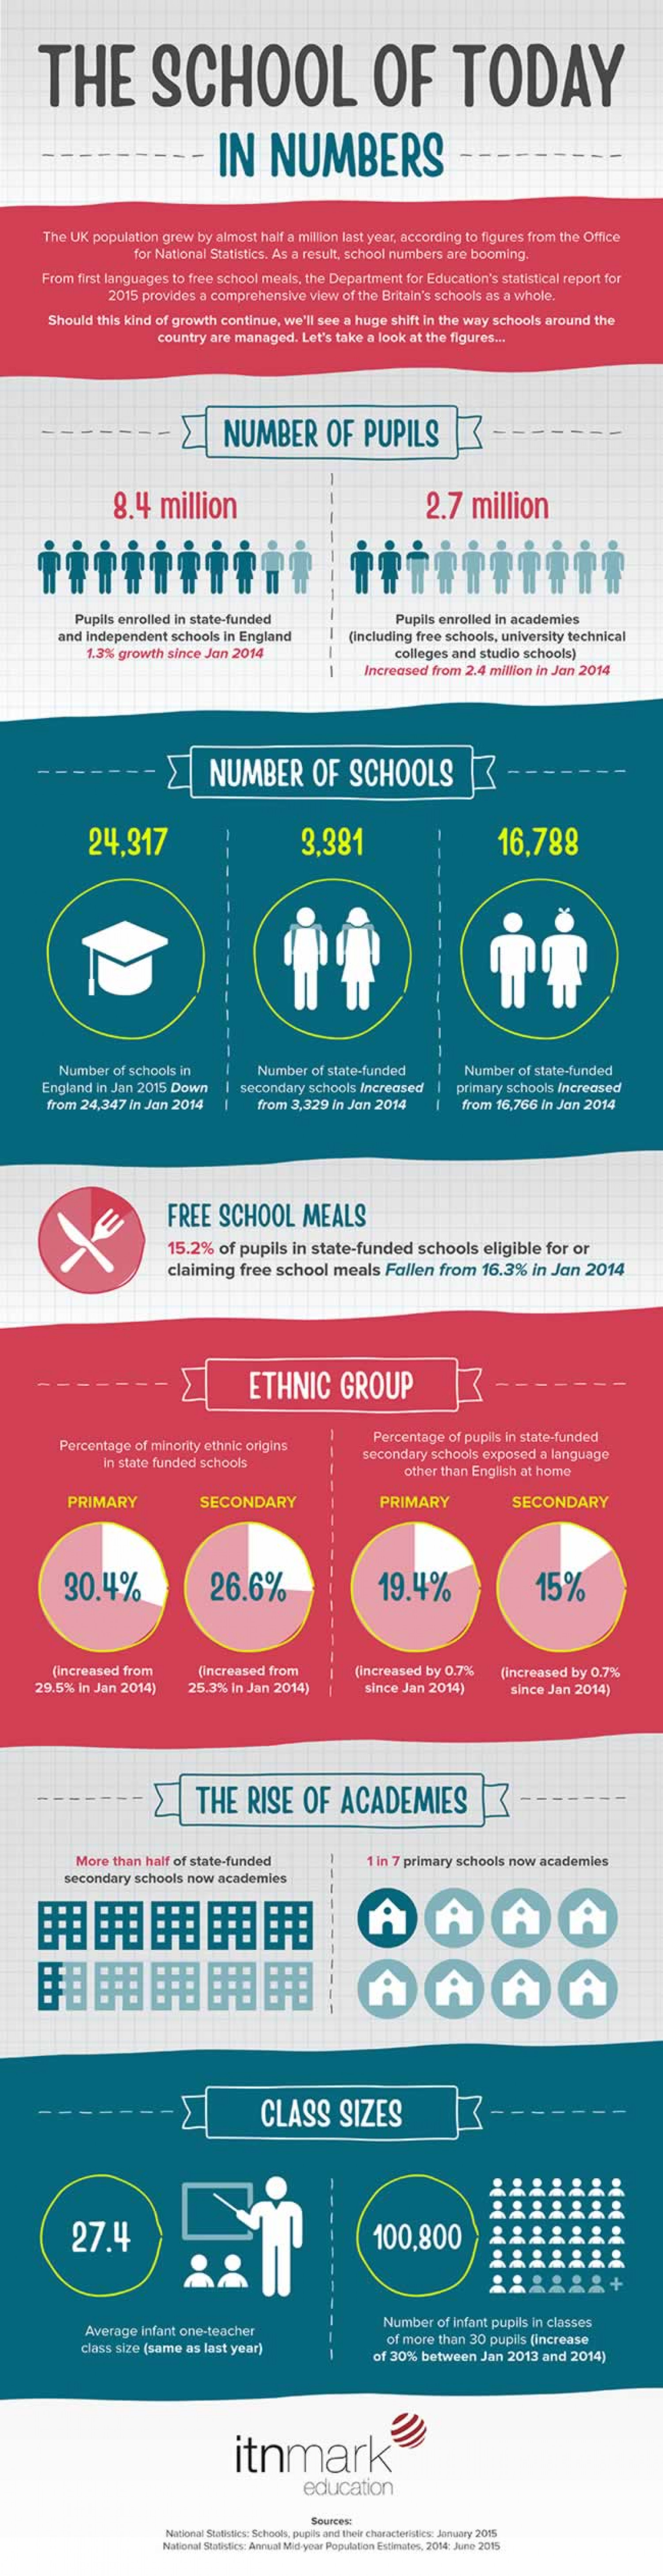 The School of Today Infographic